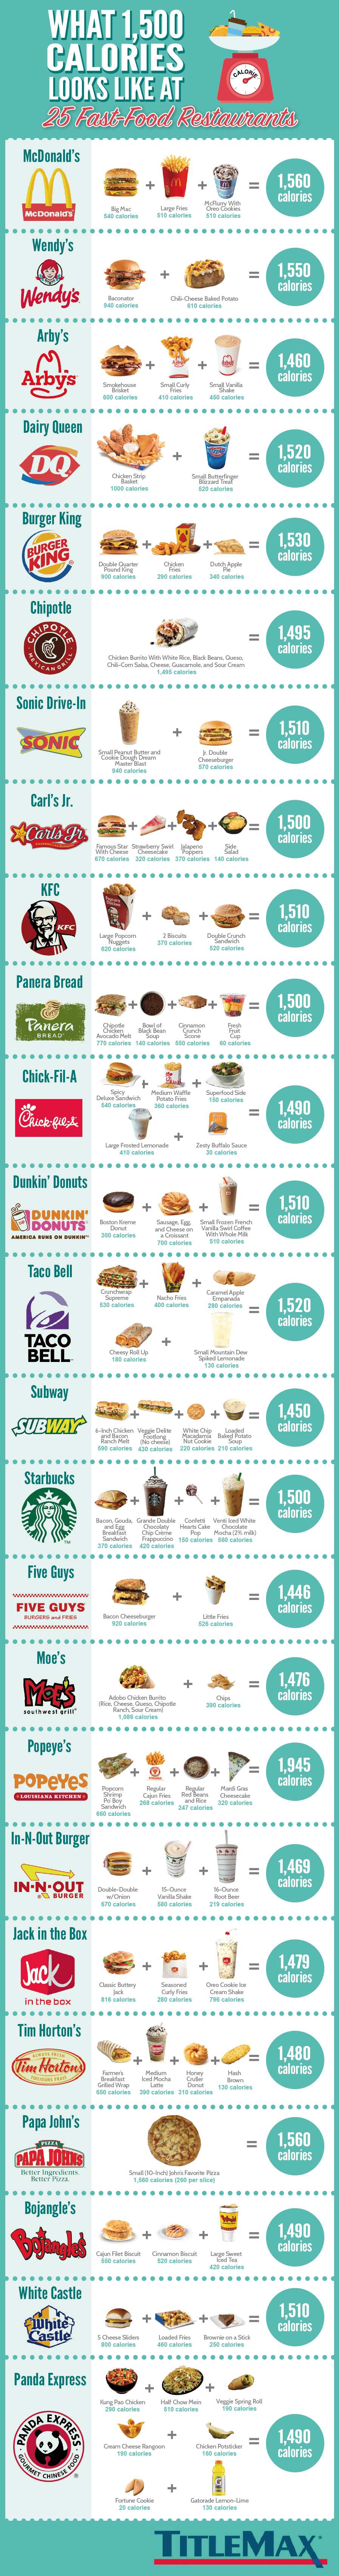 1500 Calories Diet Plan – the Fast Food Version - Infographic